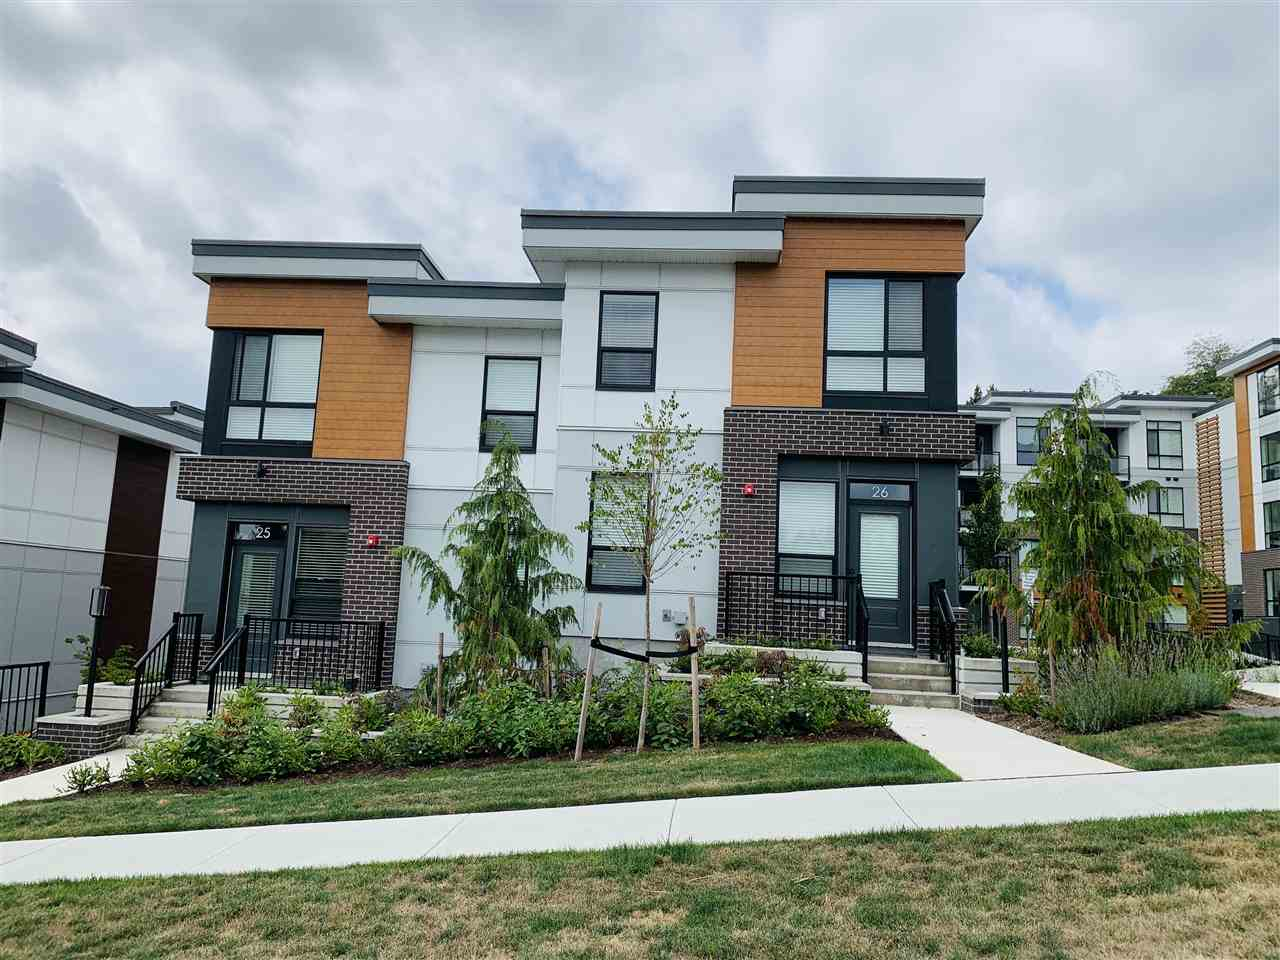 26 20087 68 AVENUE - Willoughby Heights Townhouse for sale, 3 Bedrooms (R2528695) - #4